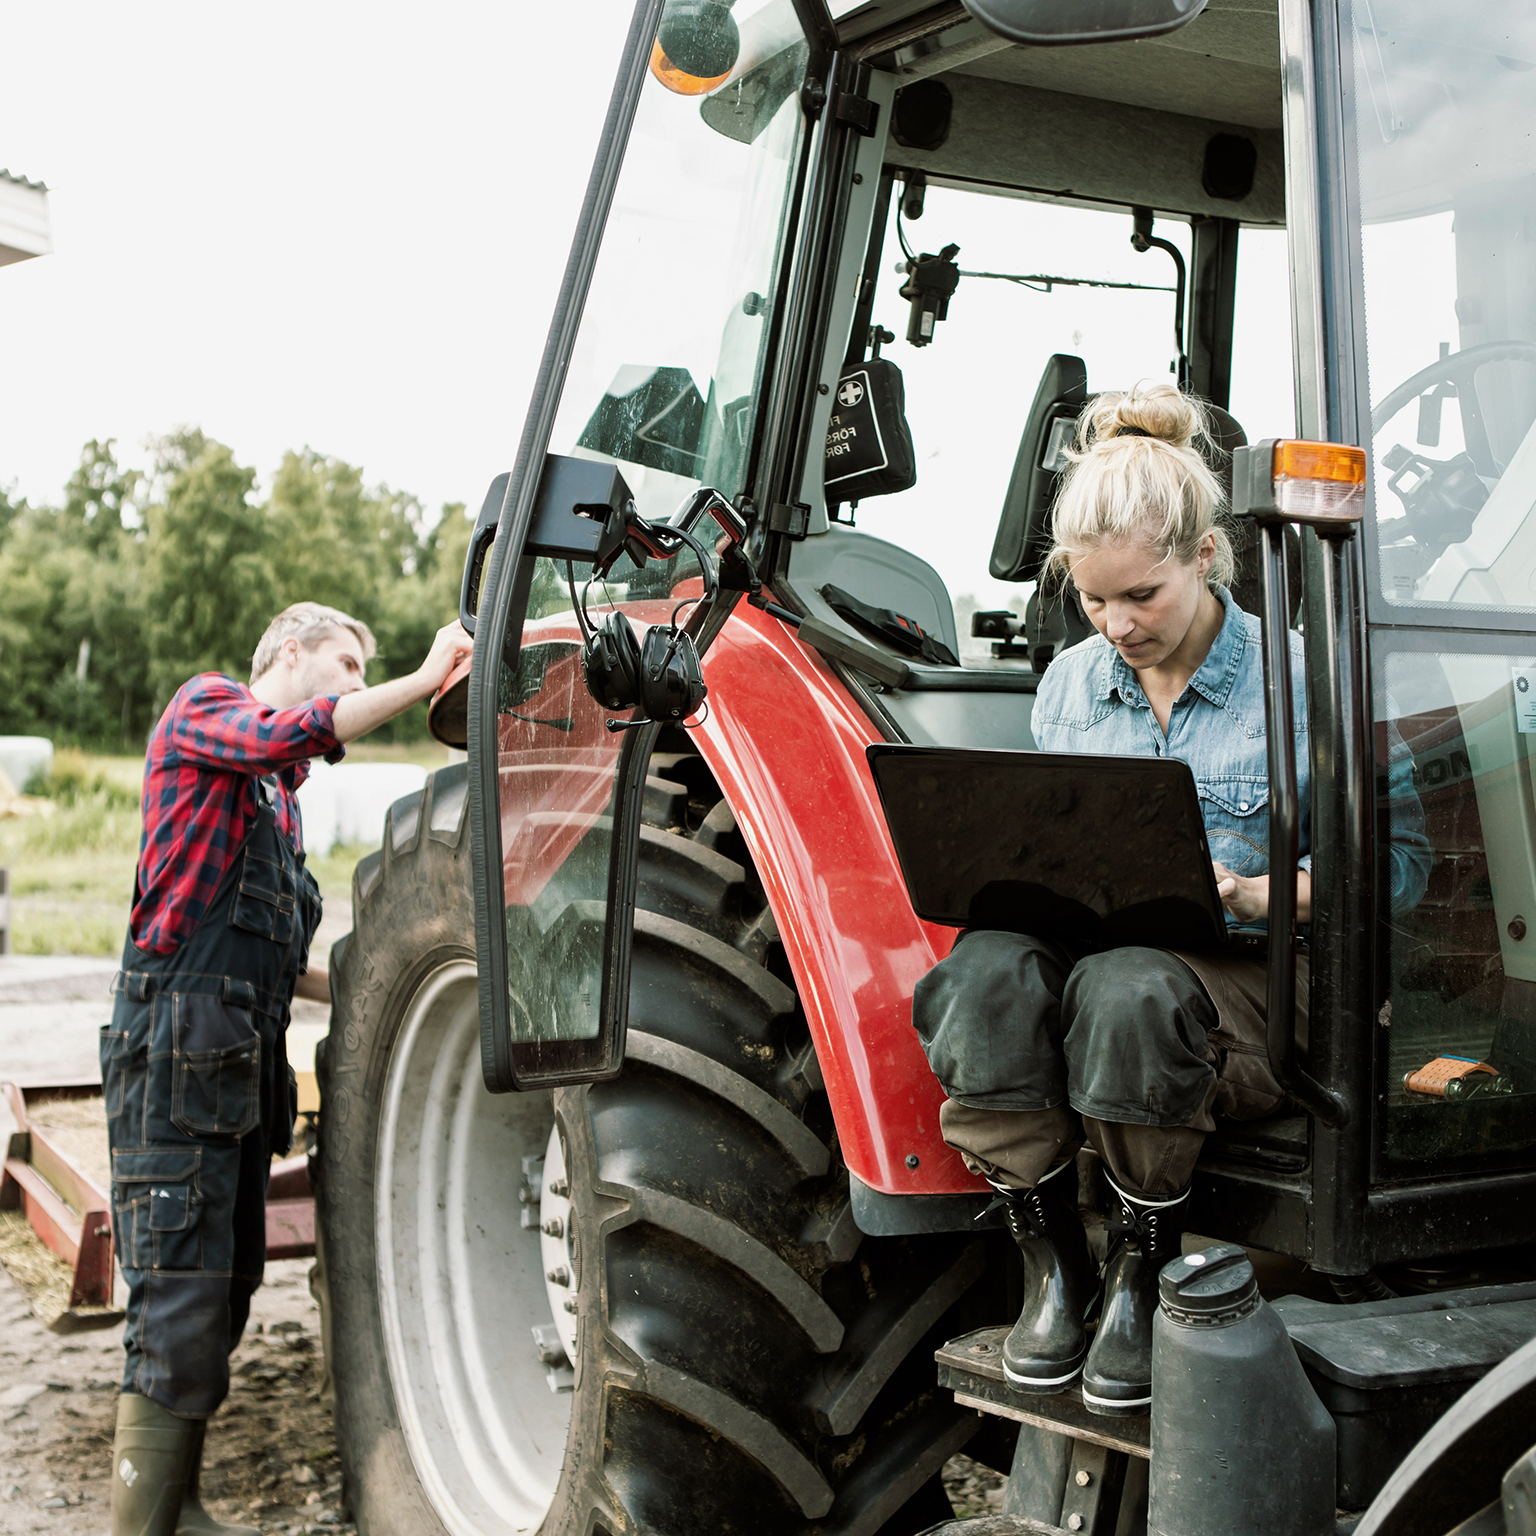 farmers-value-digital-engagement,-but-want-producers-to-step-up-their-game